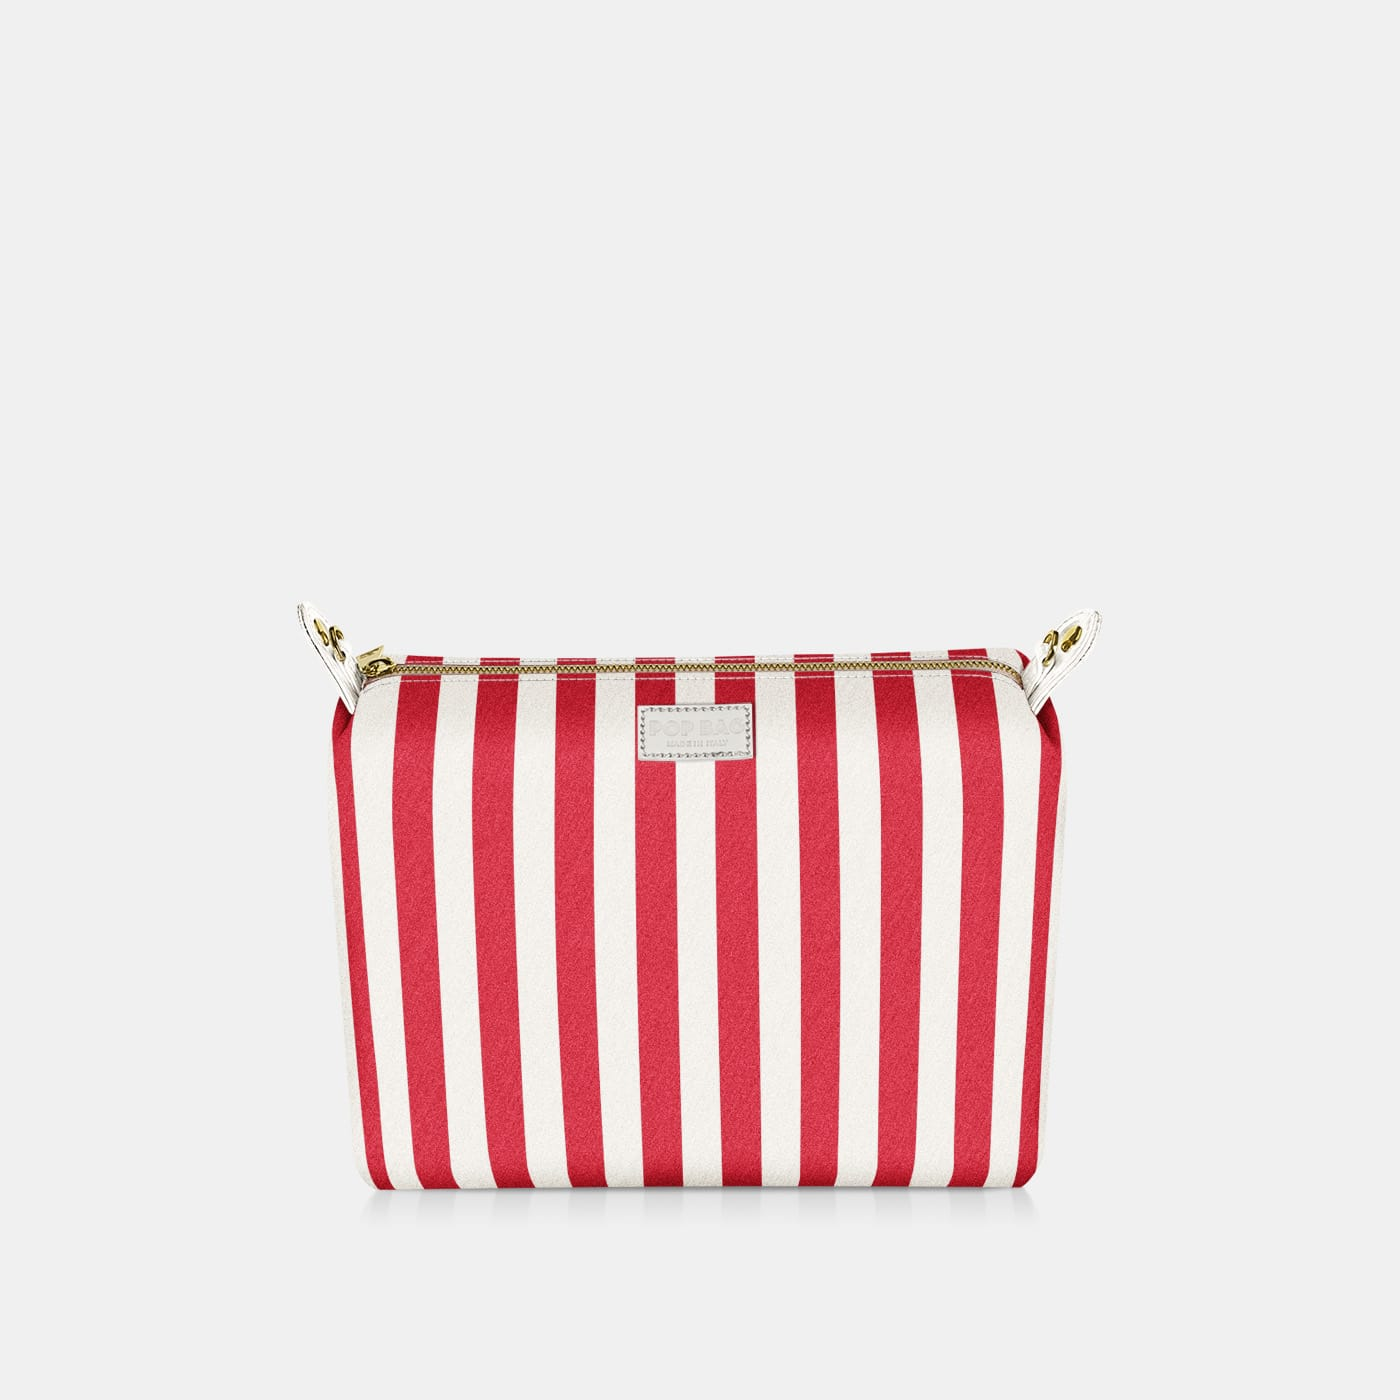 Bag in Bag Striped - Red Stripe - Small